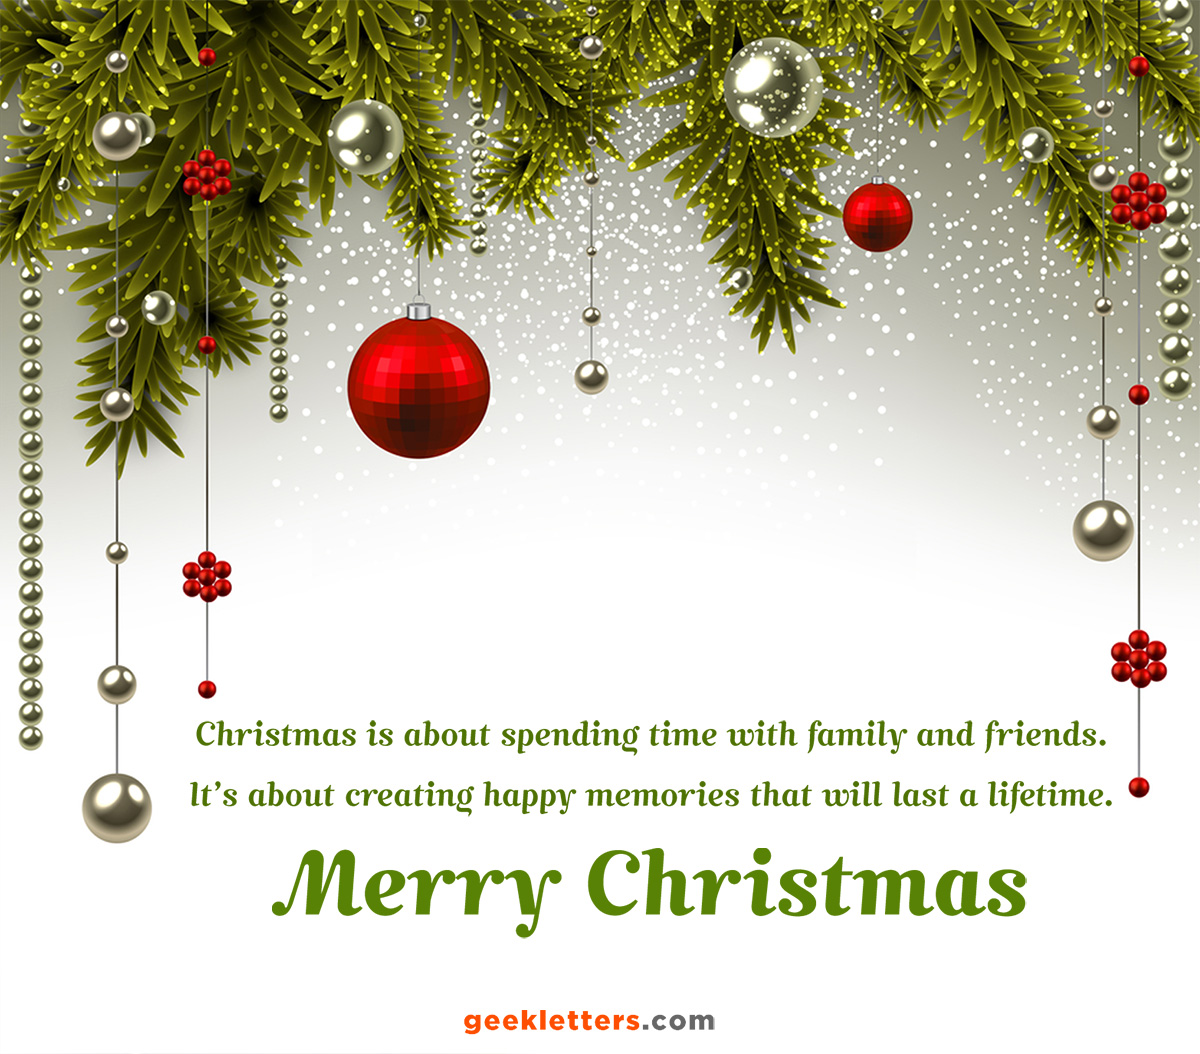 best christmas wishes and quotes and messages 2019